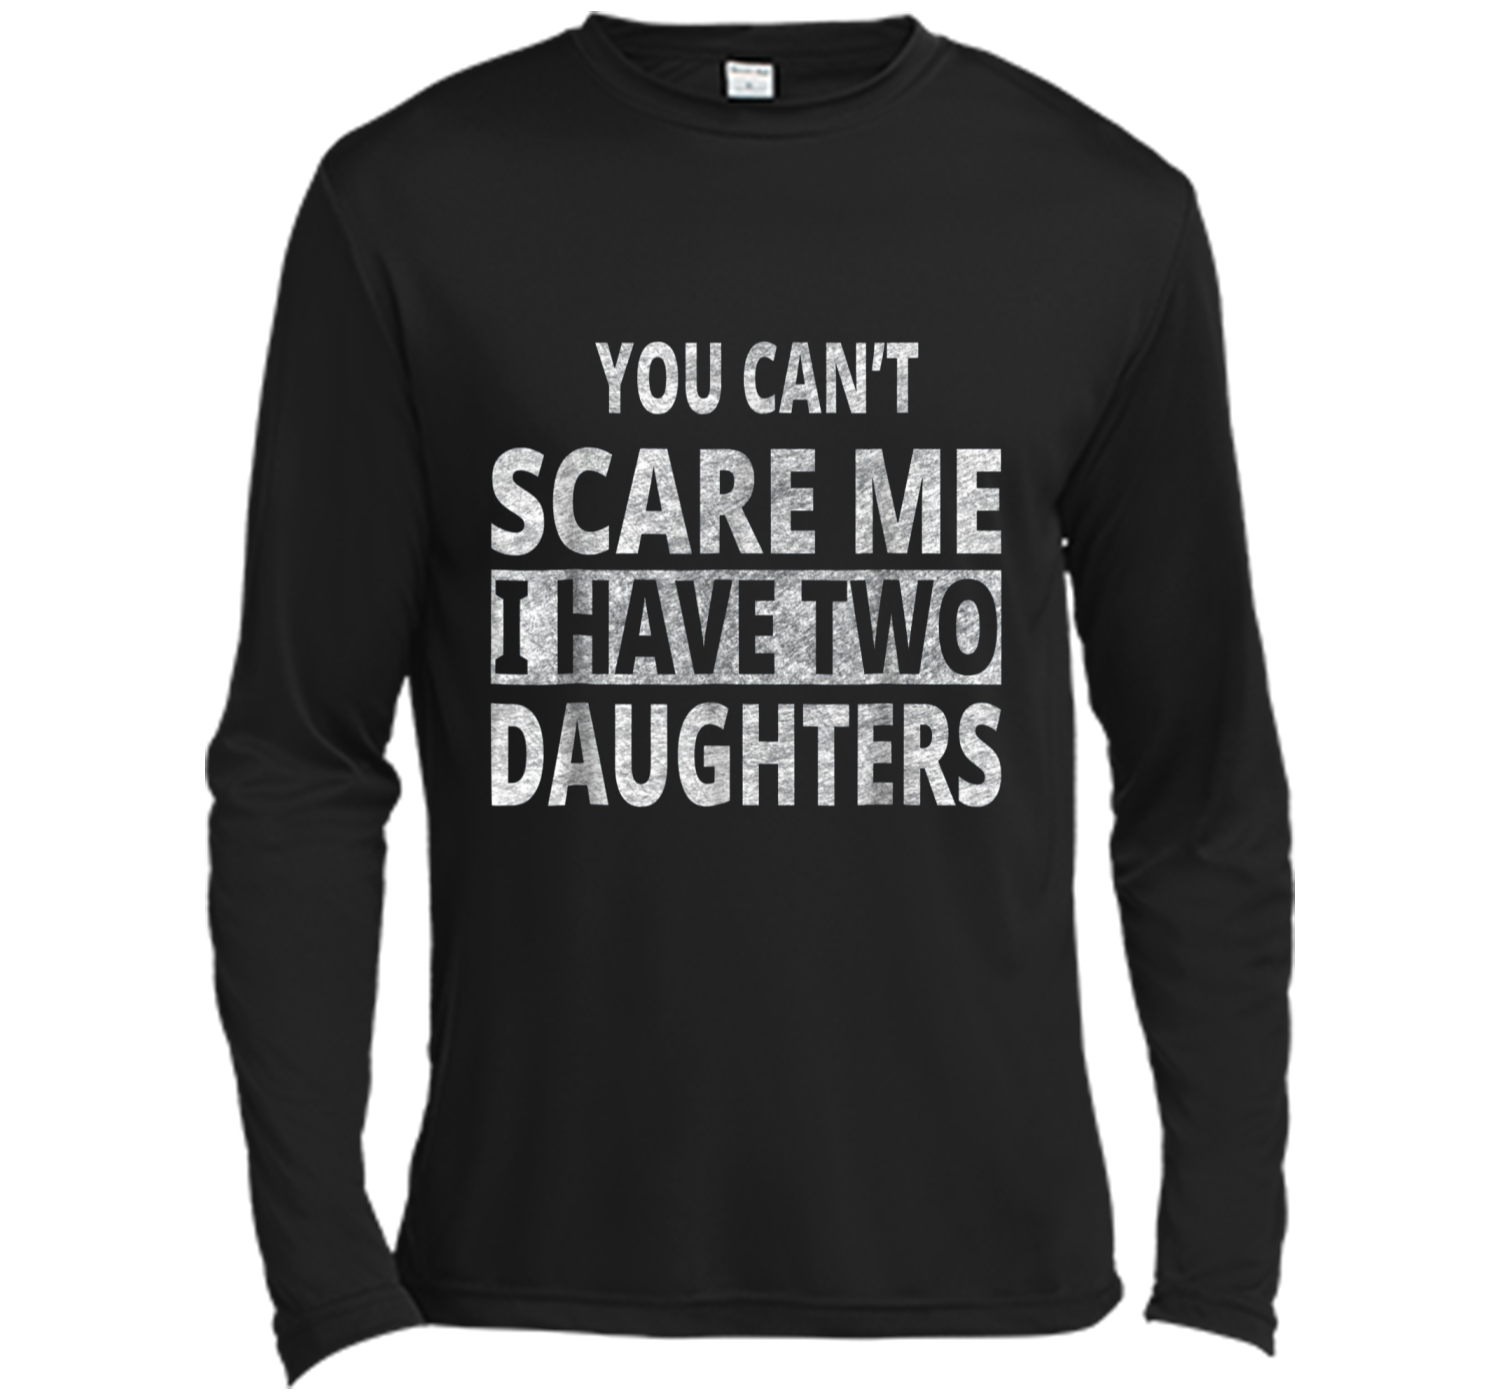 b7899c57 You Can't Scare Me I Have Two Daughters T-Shirt Father's Day Long ...